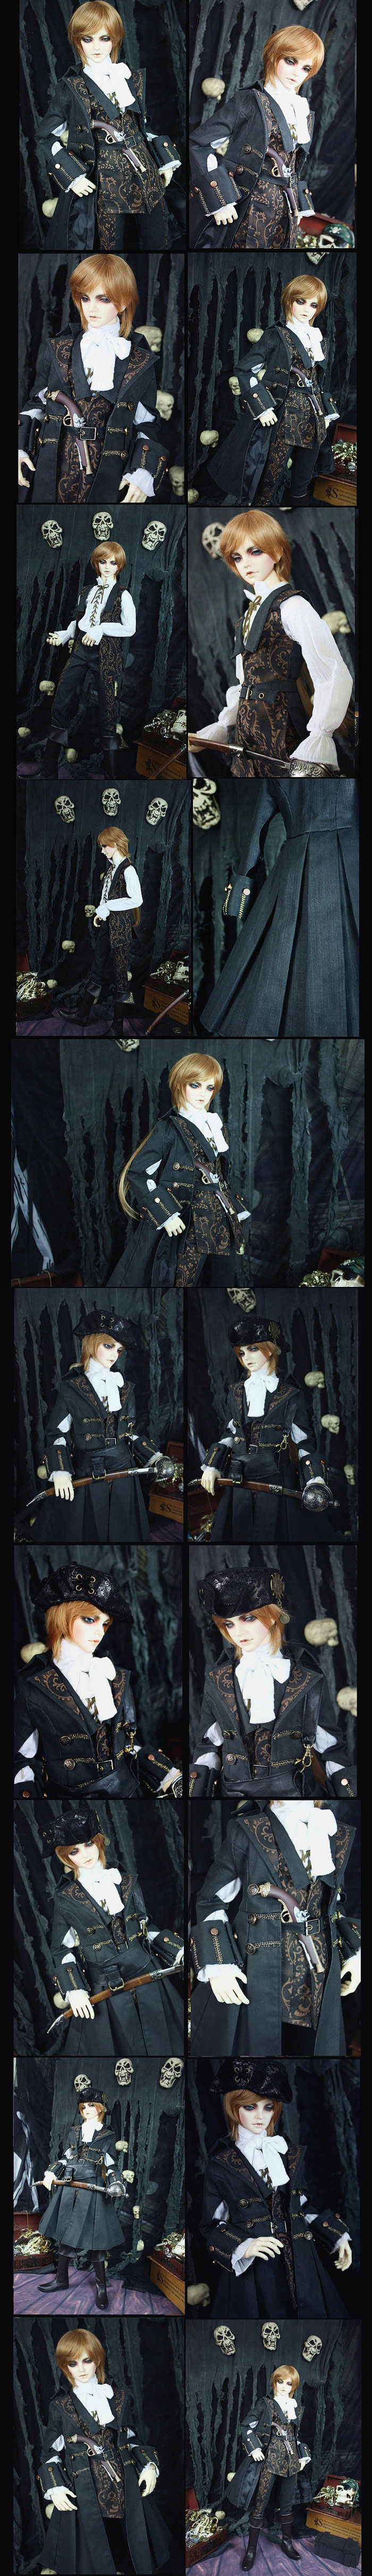 Bjd Clothes Nemesis for MSD Ball-jointed Doll